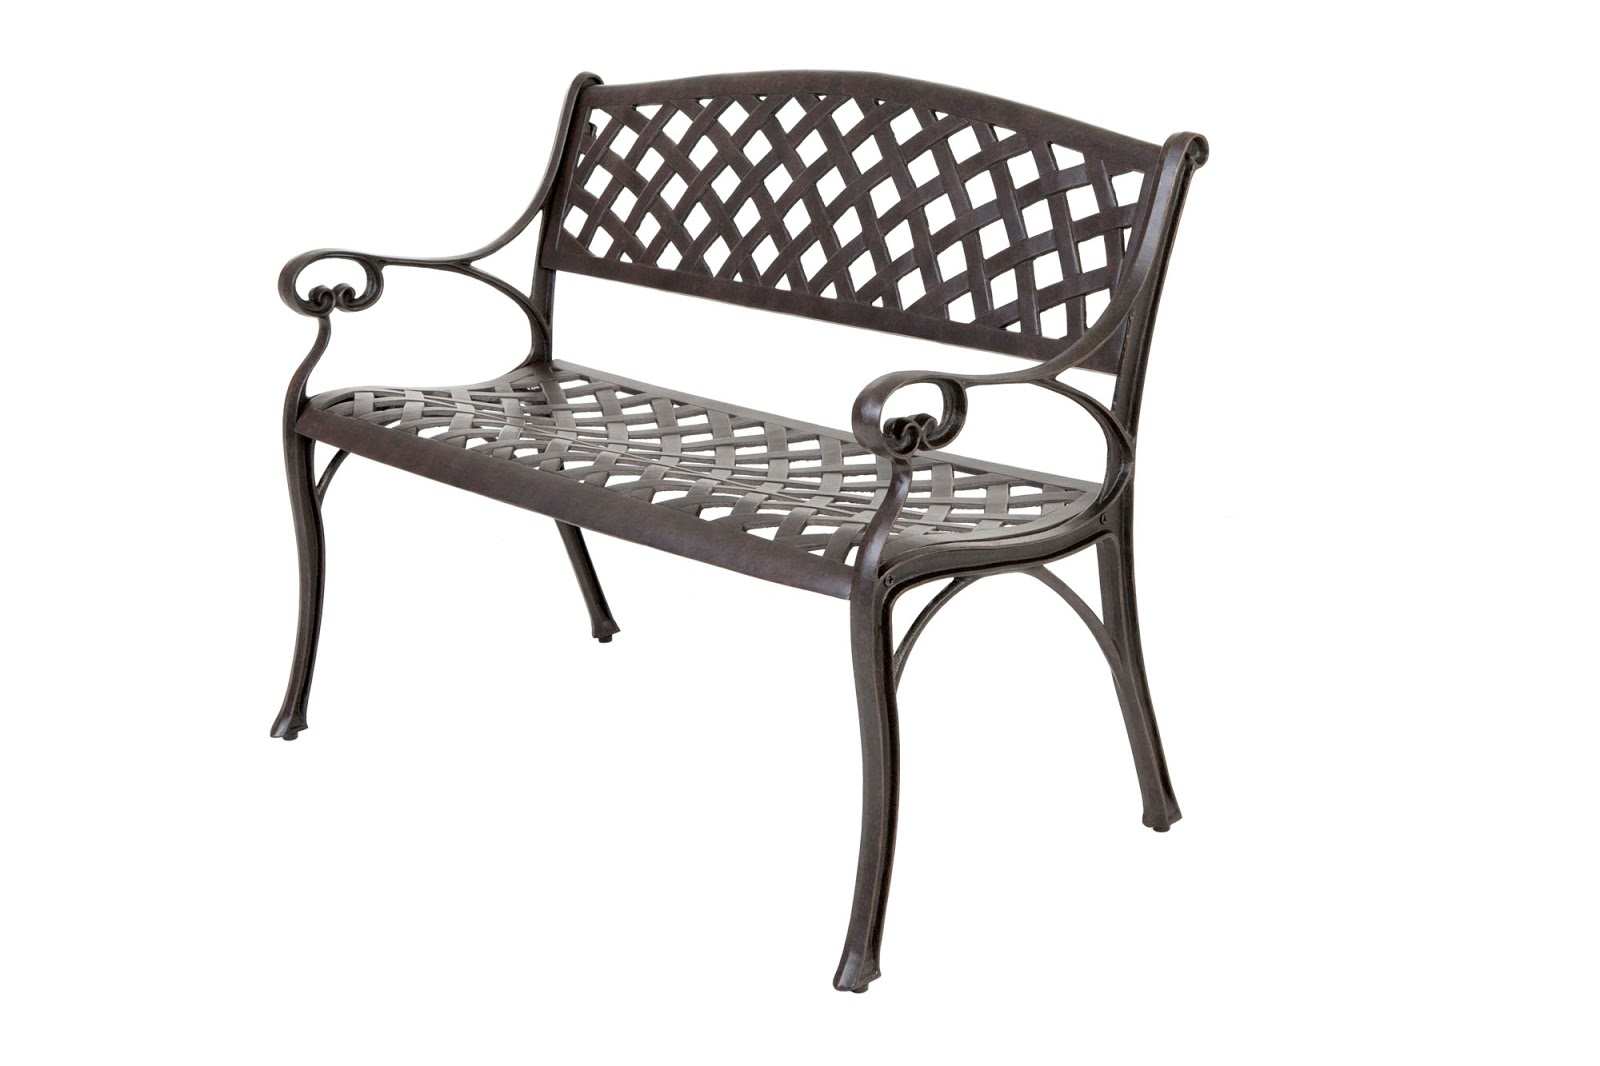 Outside Edge Garden Furniture Blog Free Cast Aluminium Garden Bistro Set or Bench when ing